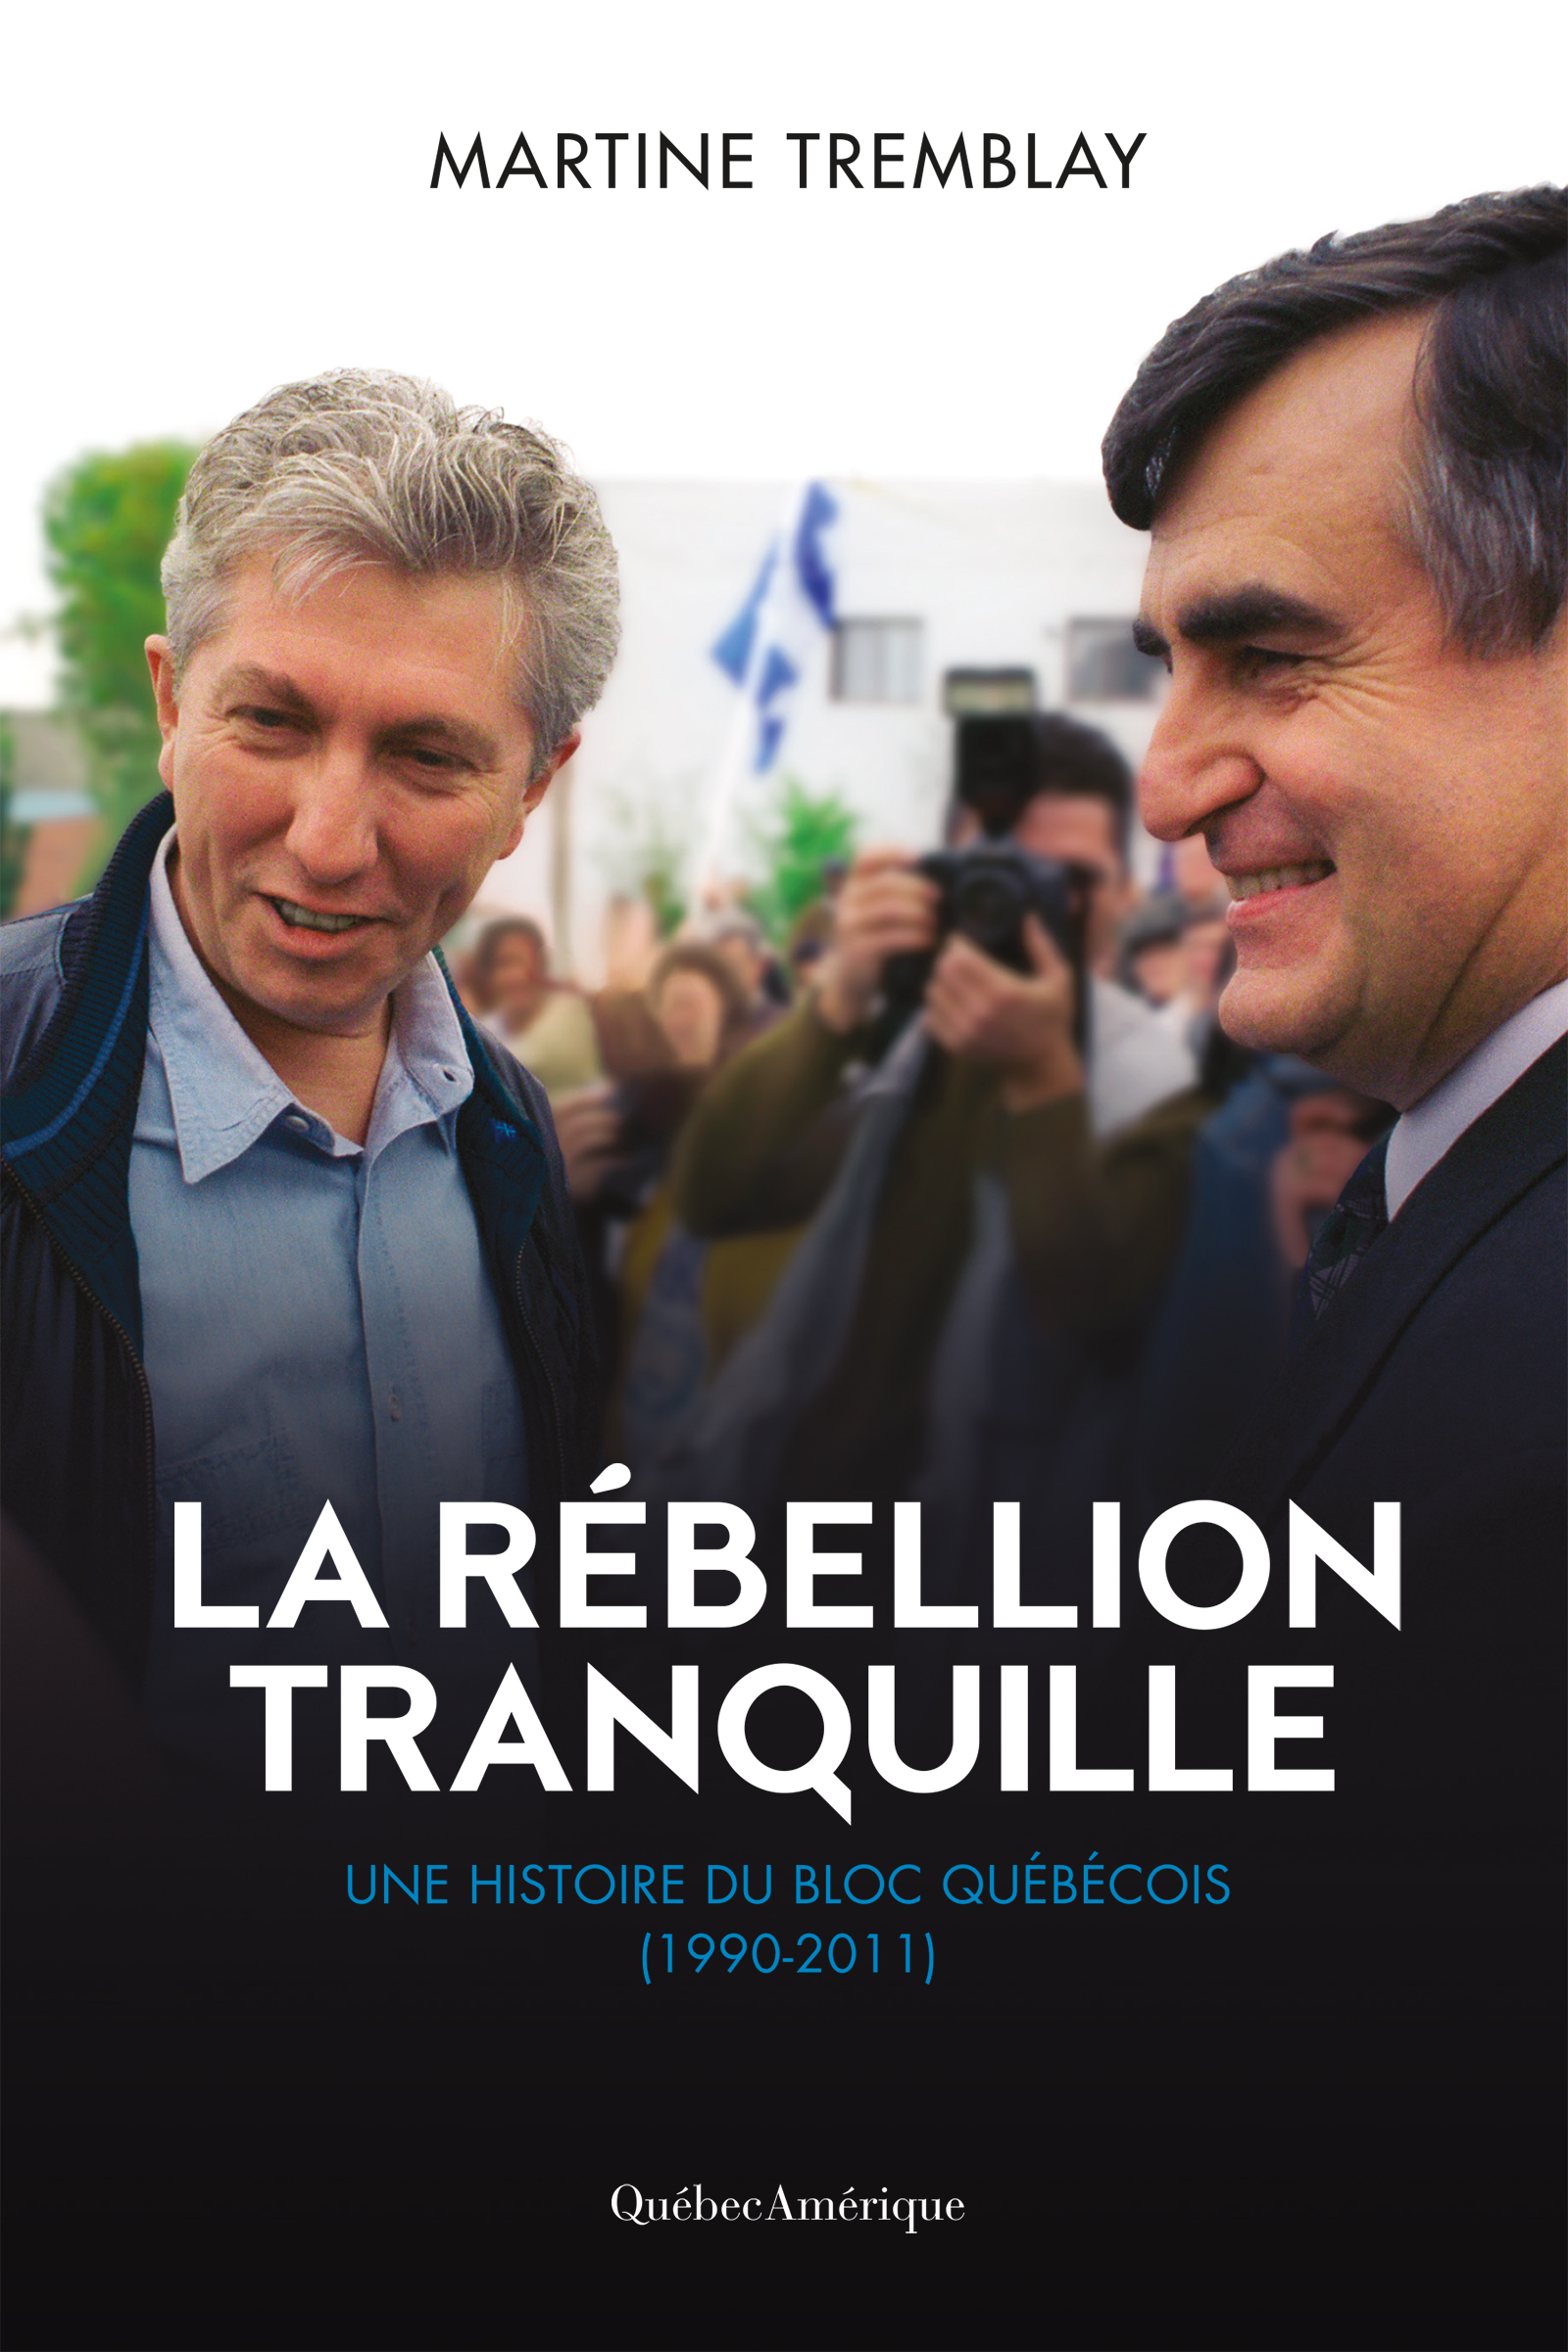 La rébellion tranquille